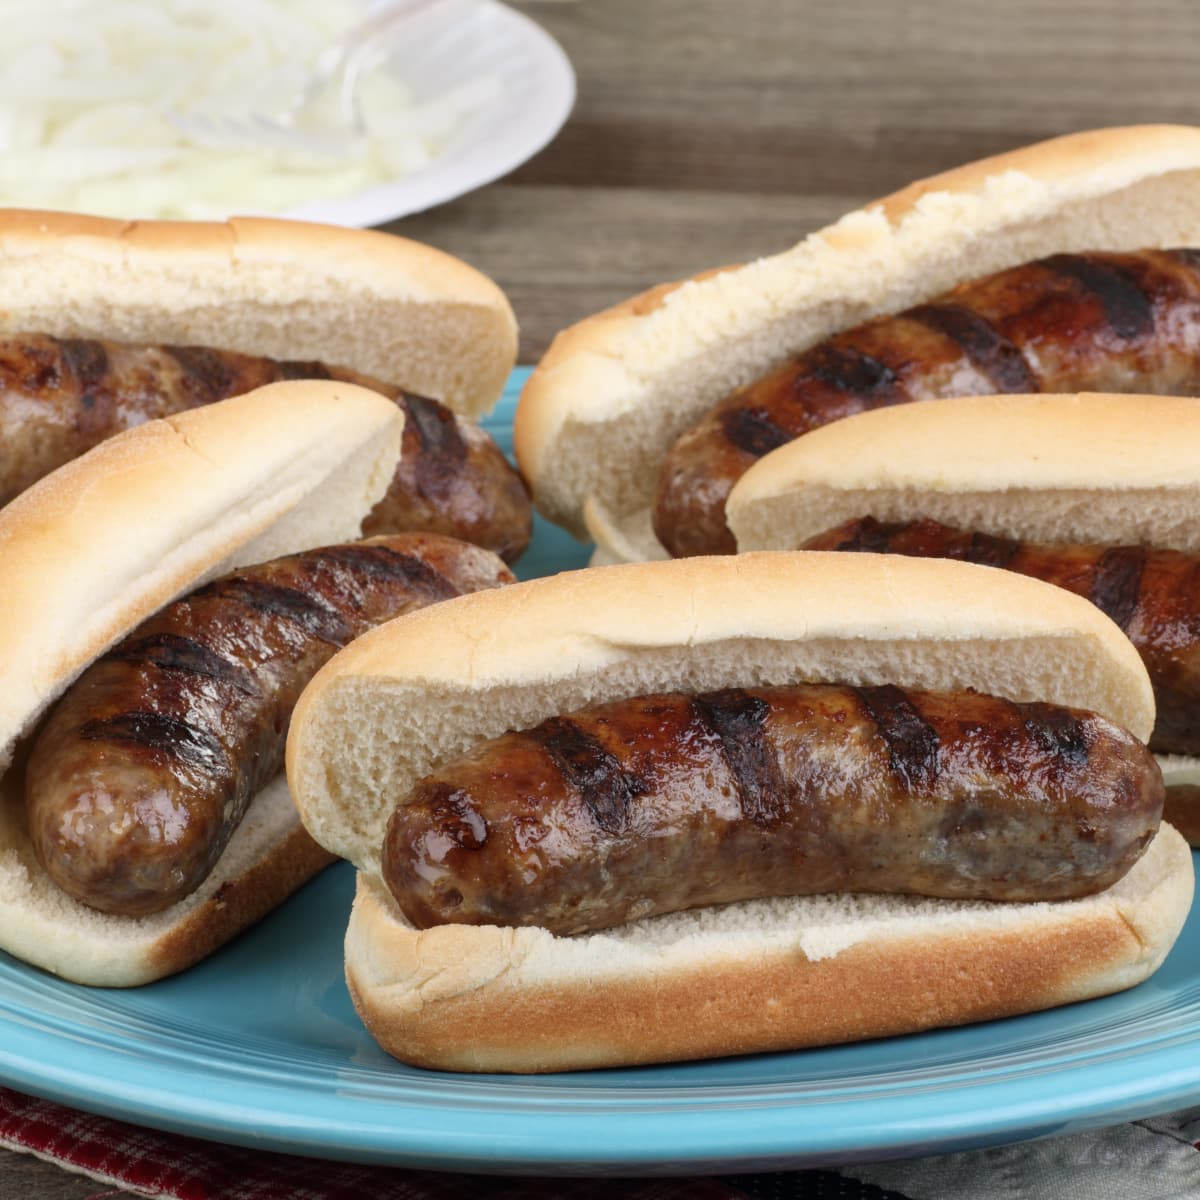 beer brats served on toasted buns with sliced onions served on a blue plate